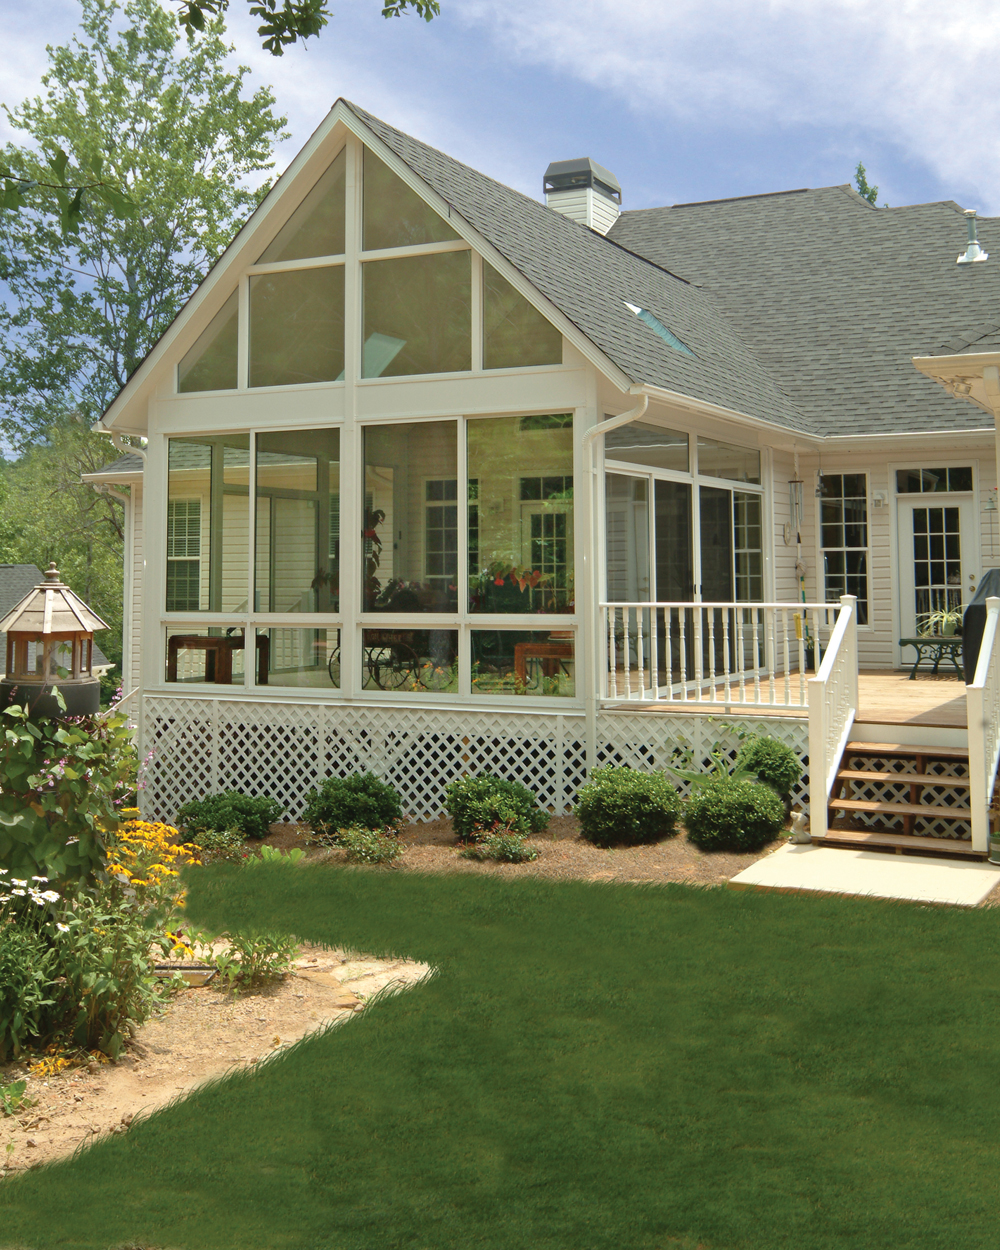 Patio enclosures inc provides five lessons for building for Home plans with sunrooms